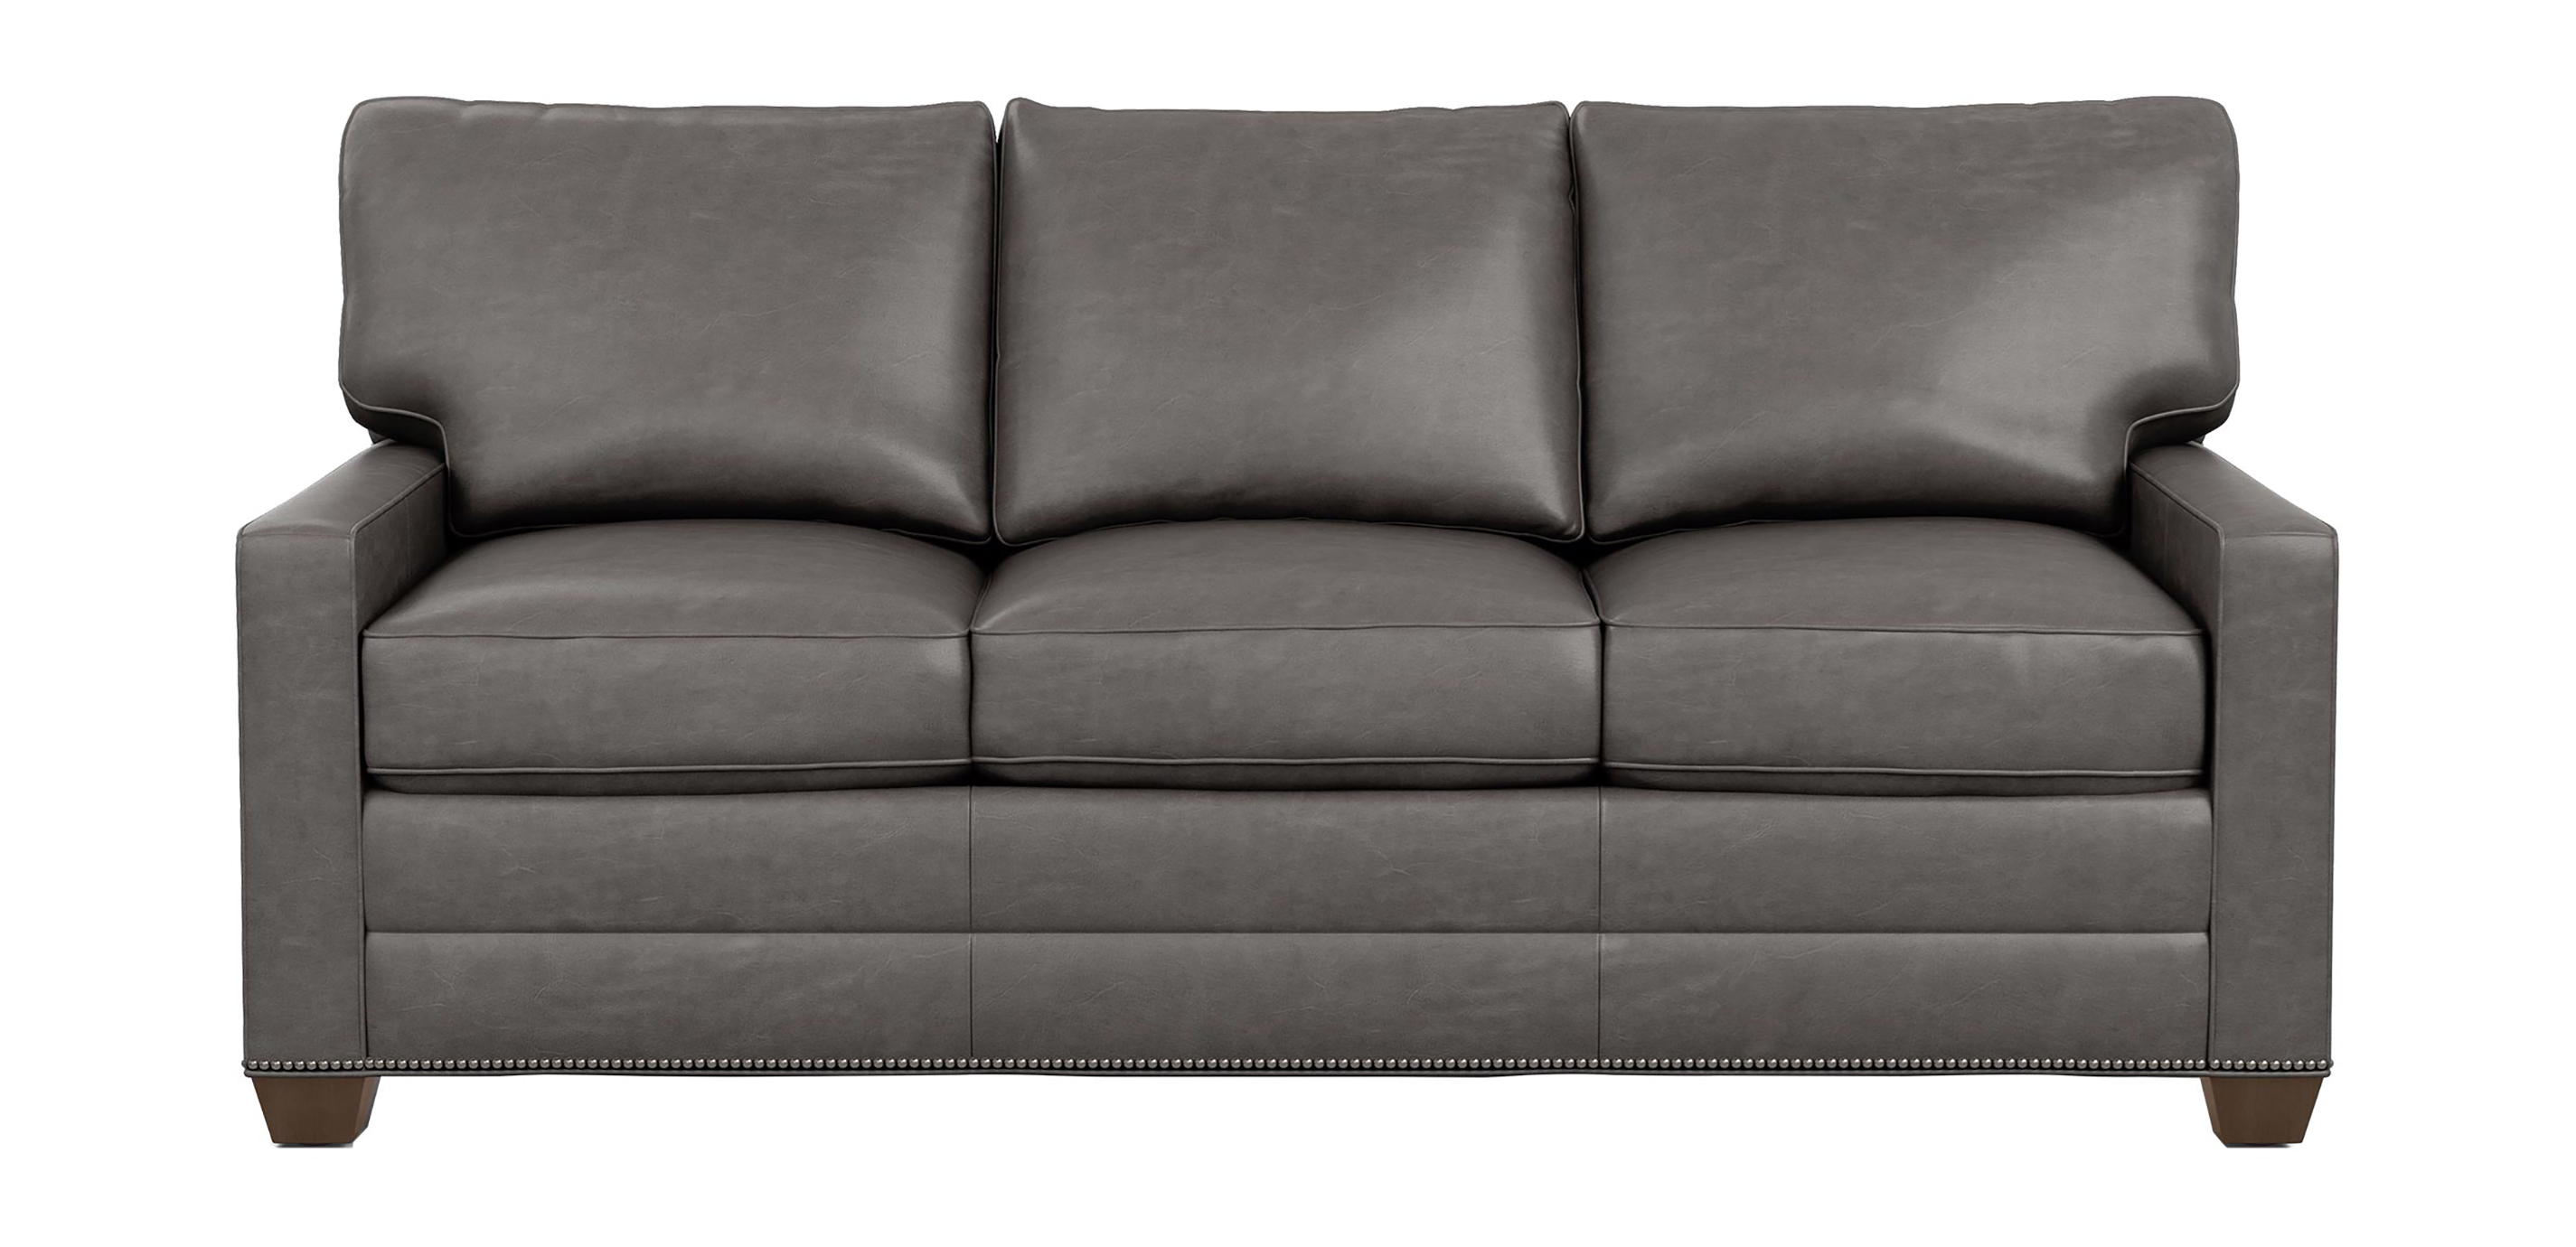 Leather Furniture Traveler Collection: Bennett Track-Arm Leather Three Seat Sofa